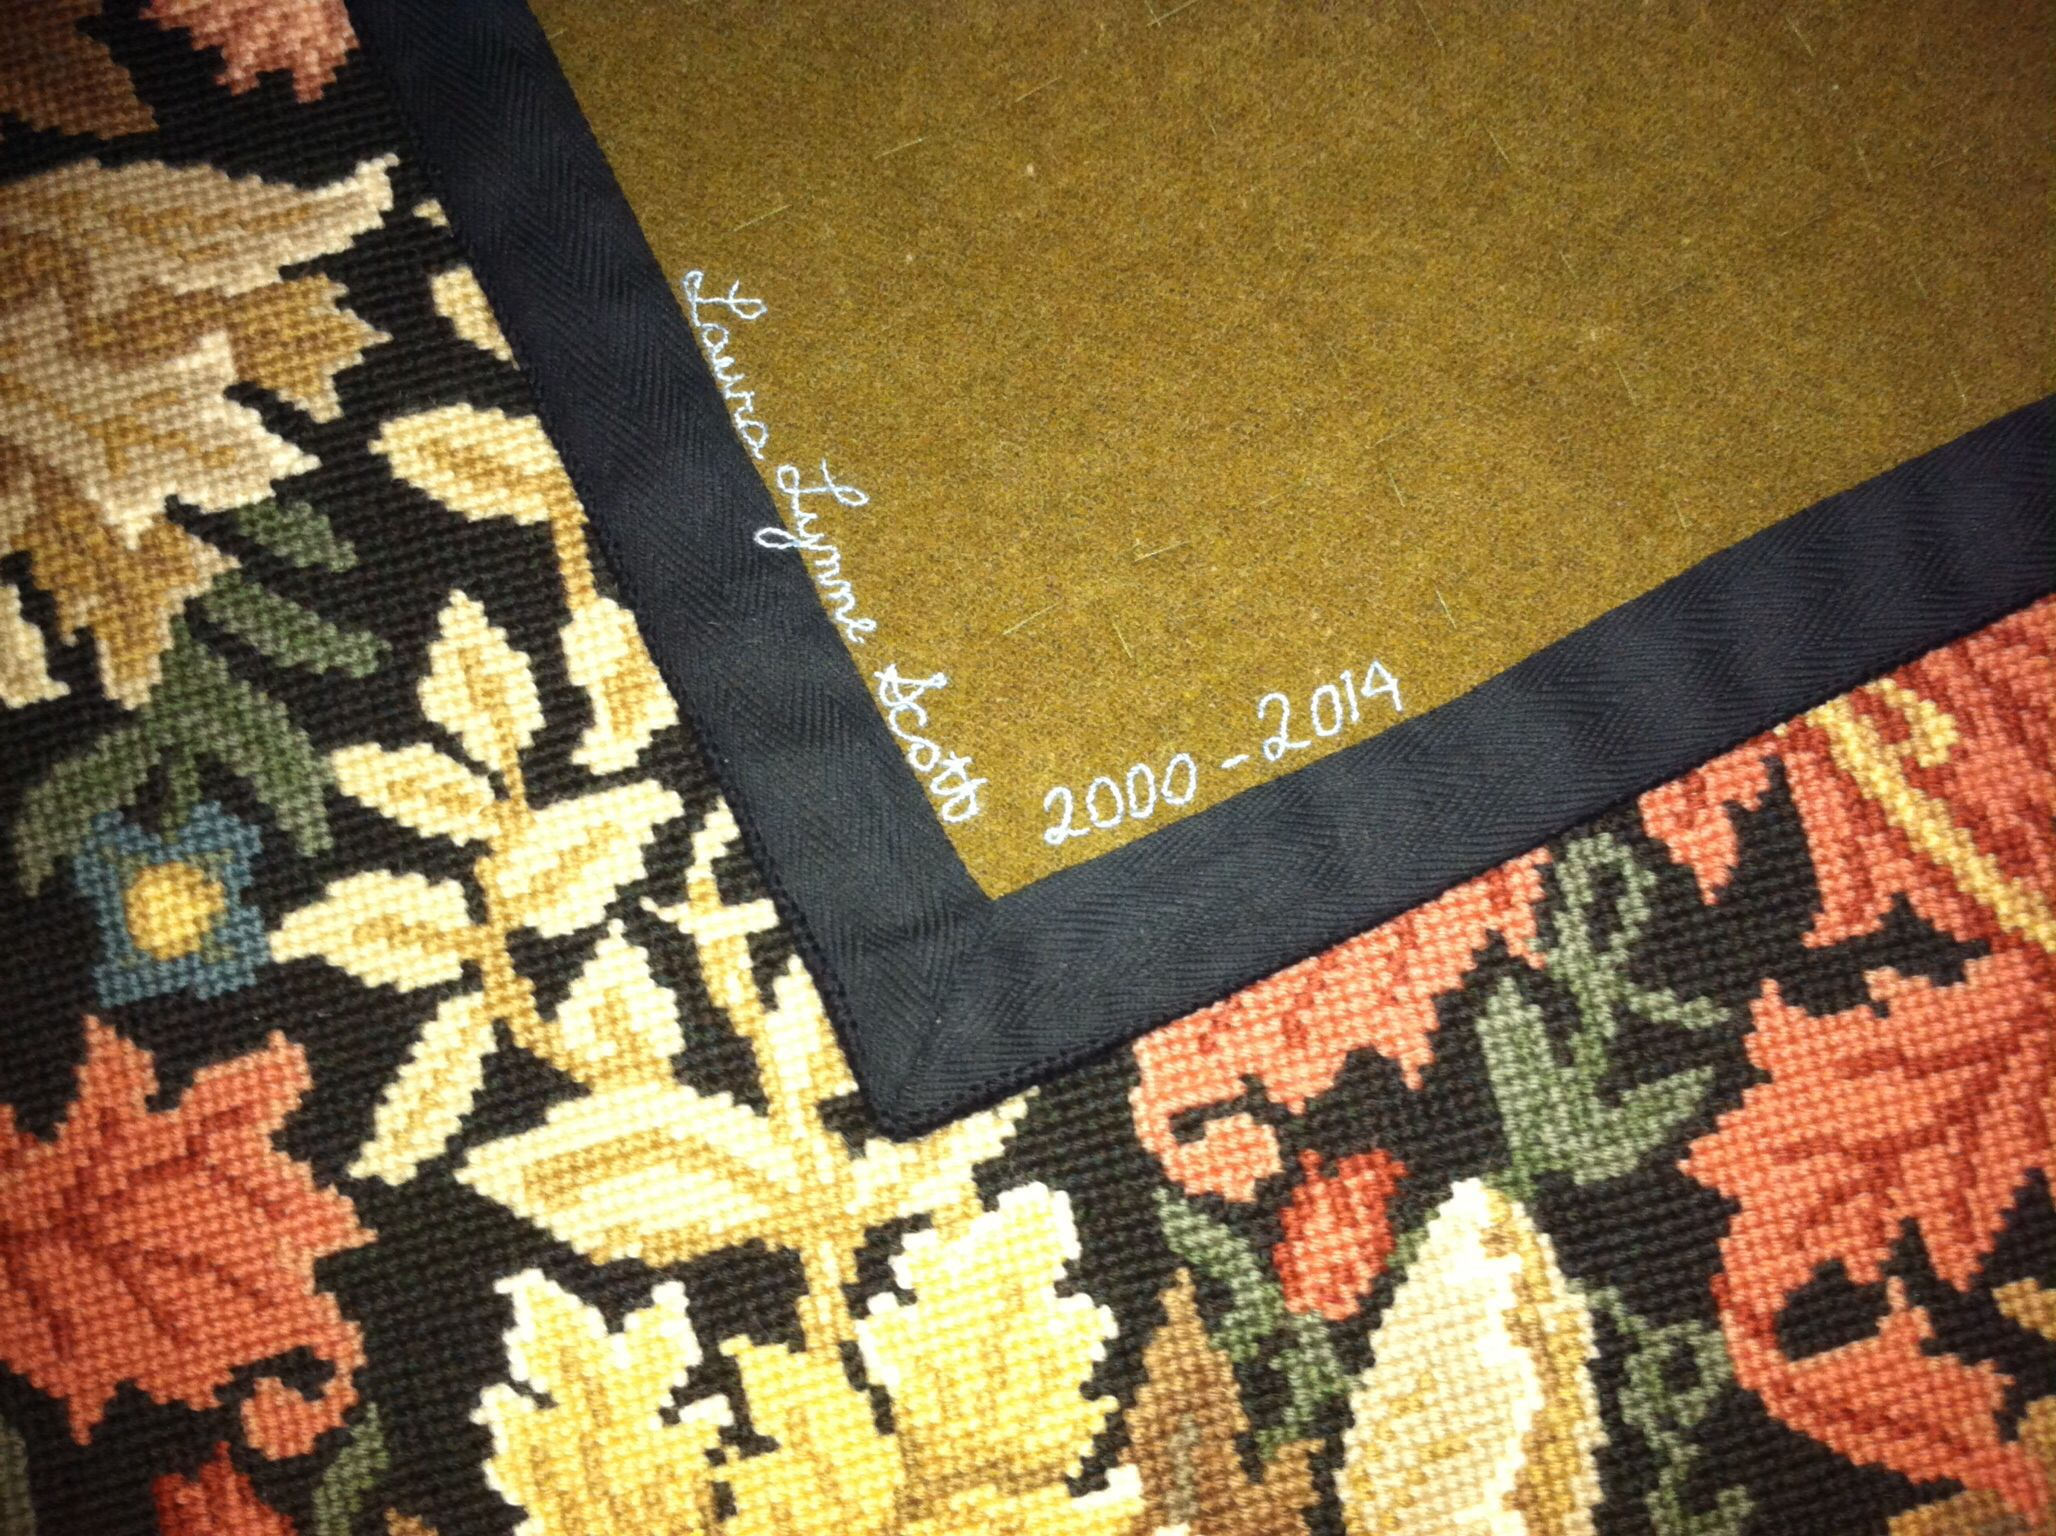 Needlepoint Rug Backing William Morris Compton Beth Russell Needlepoint Used Old Army Blanket For Backing Needlepoint Rugs William Morris Blanket